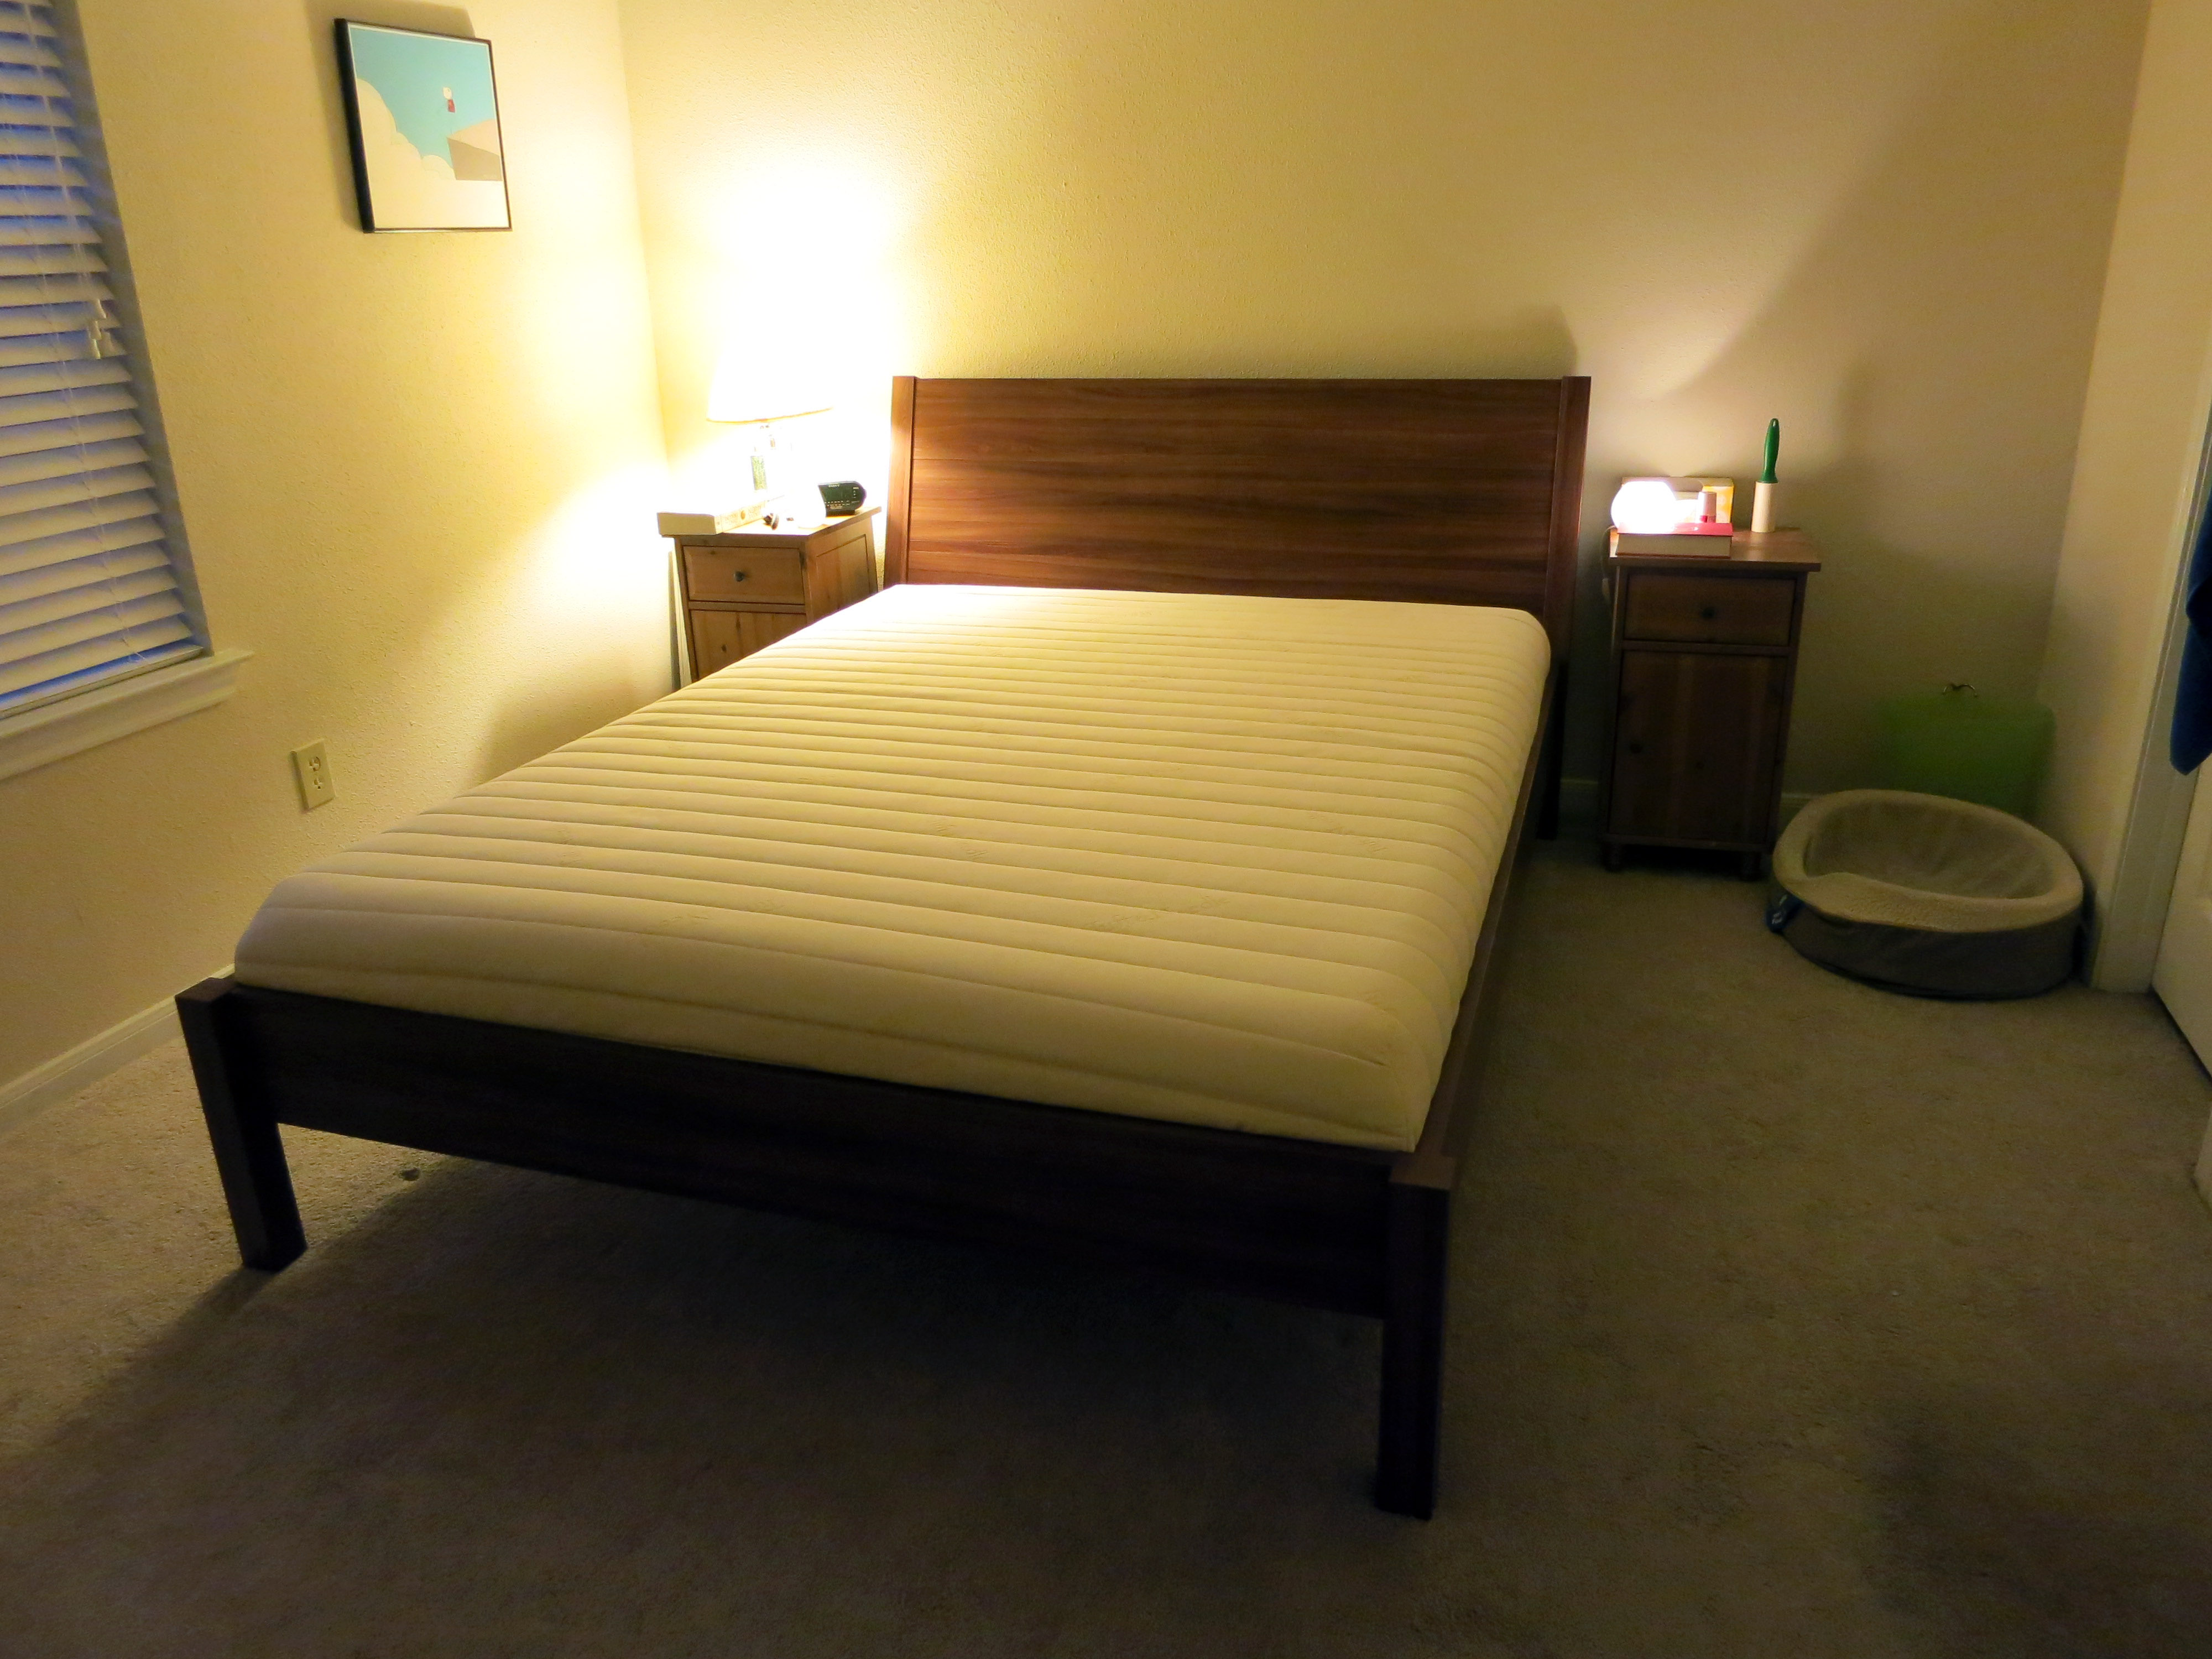 Tuft & needle's 10″ mattress: a review (and a new ikea bed frame ...